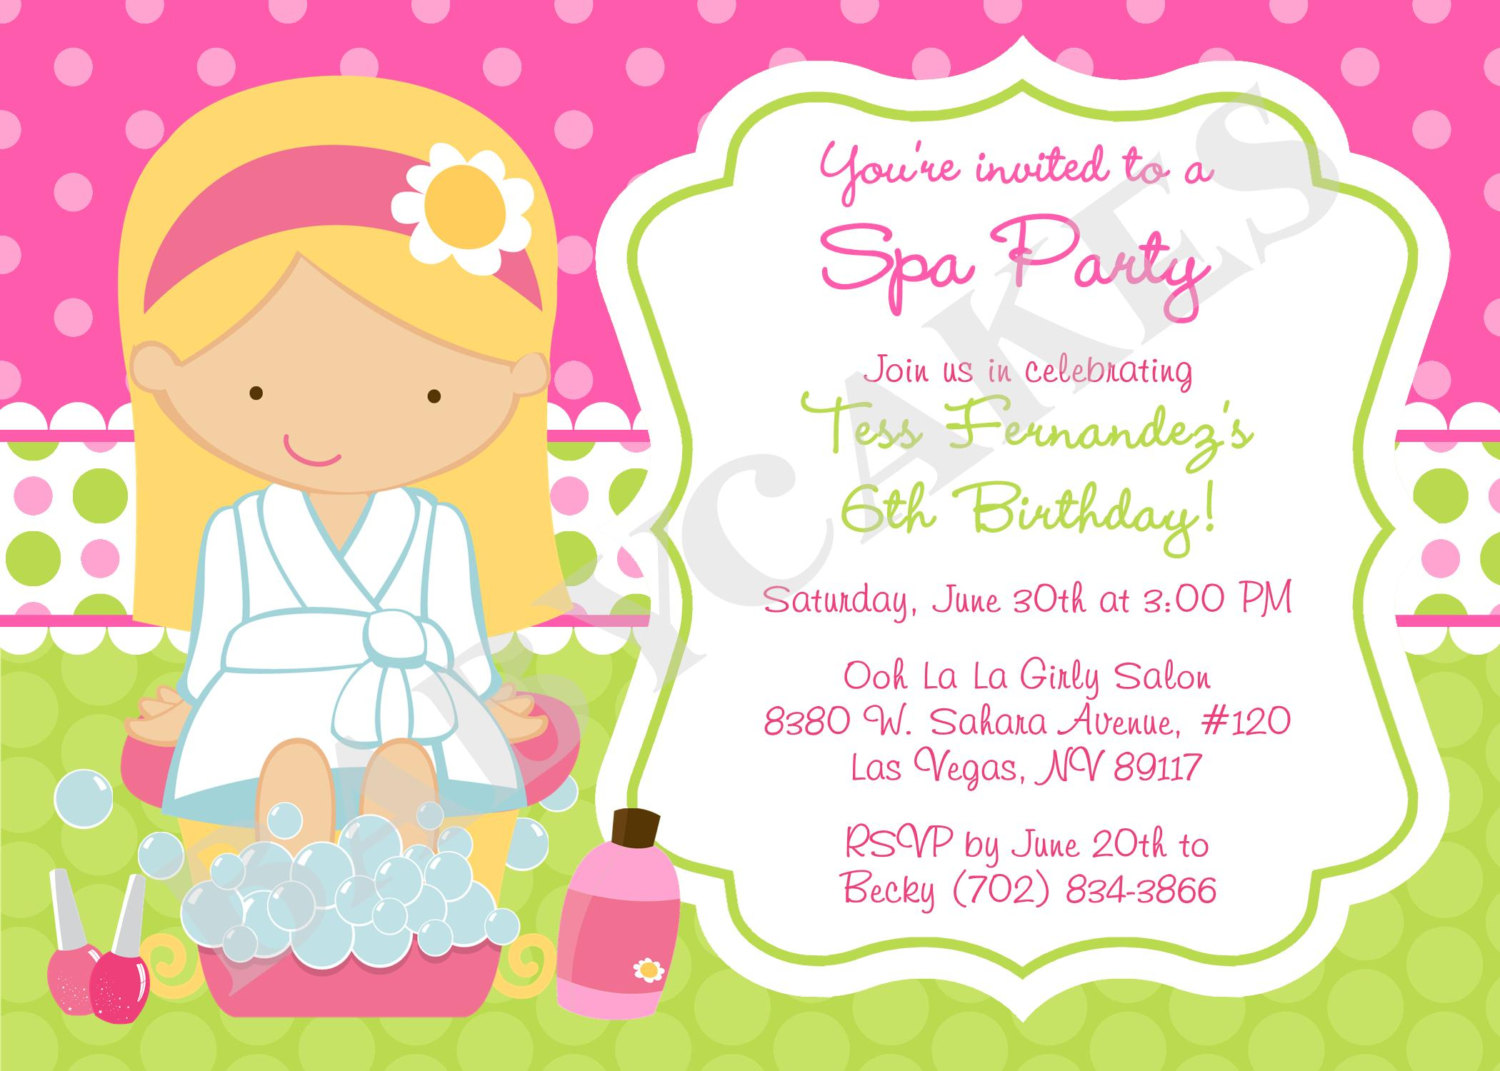 spa themed birthday party invitations printable ; 09be017aad81a6ddca358ef3f1152e62